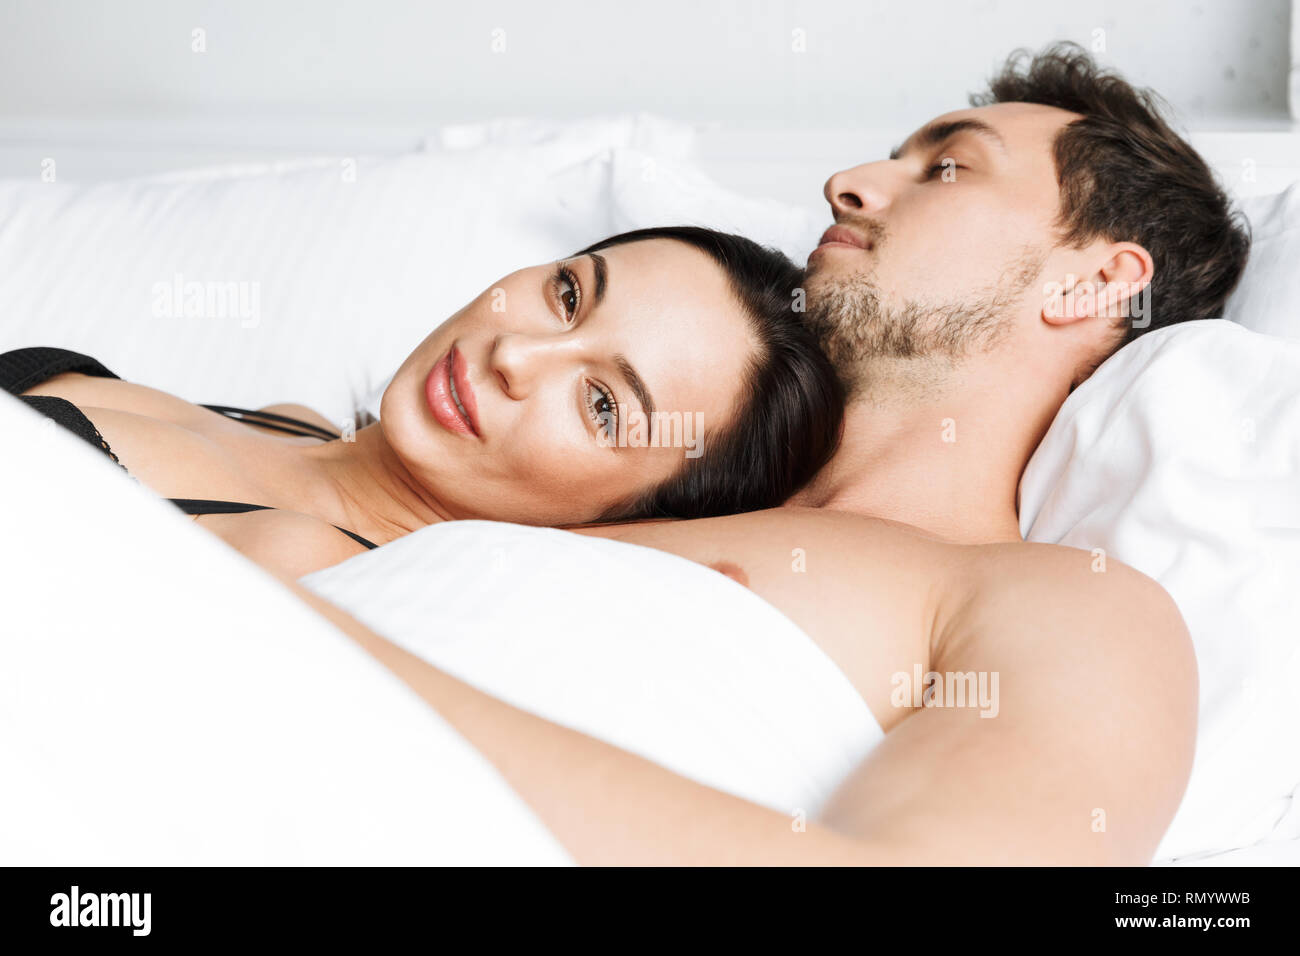 Photo Of Shirtless Couple Man And Woman Hugging Together While